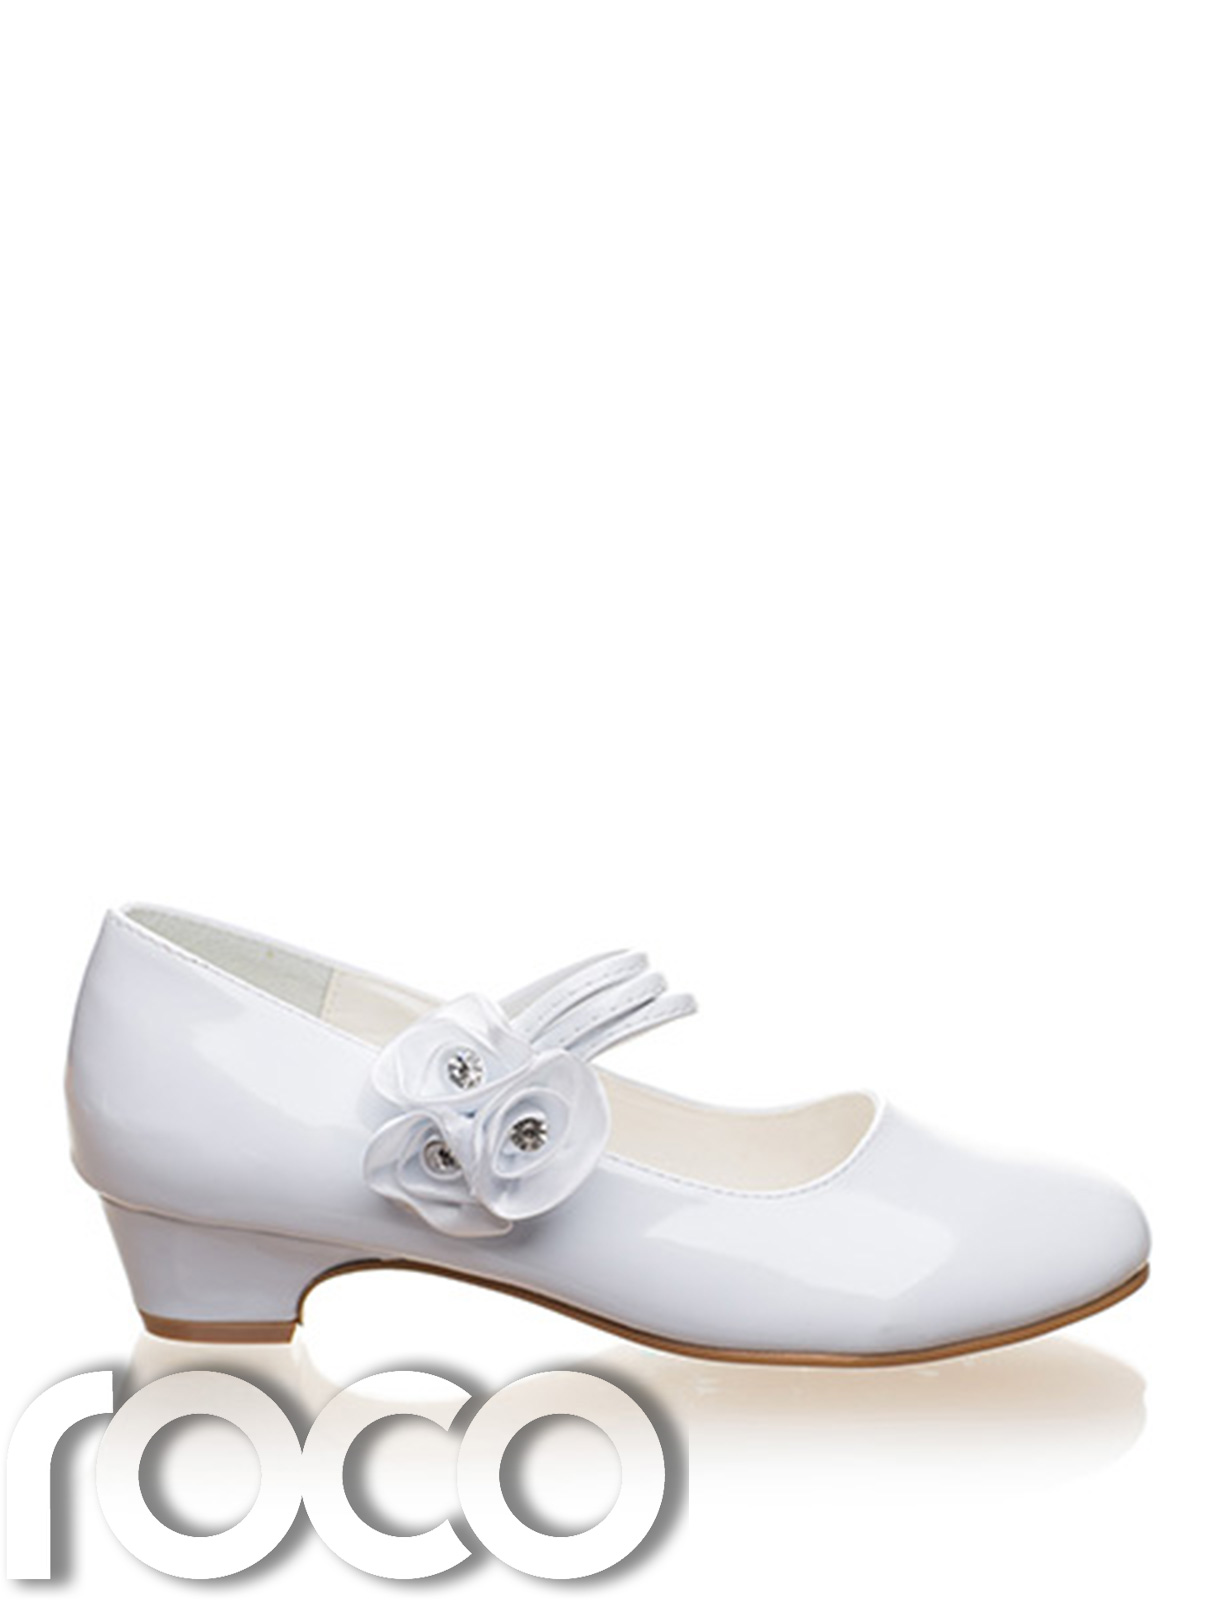 Girls White Shoes, Communion Shoes, Prom Shoes, Flower